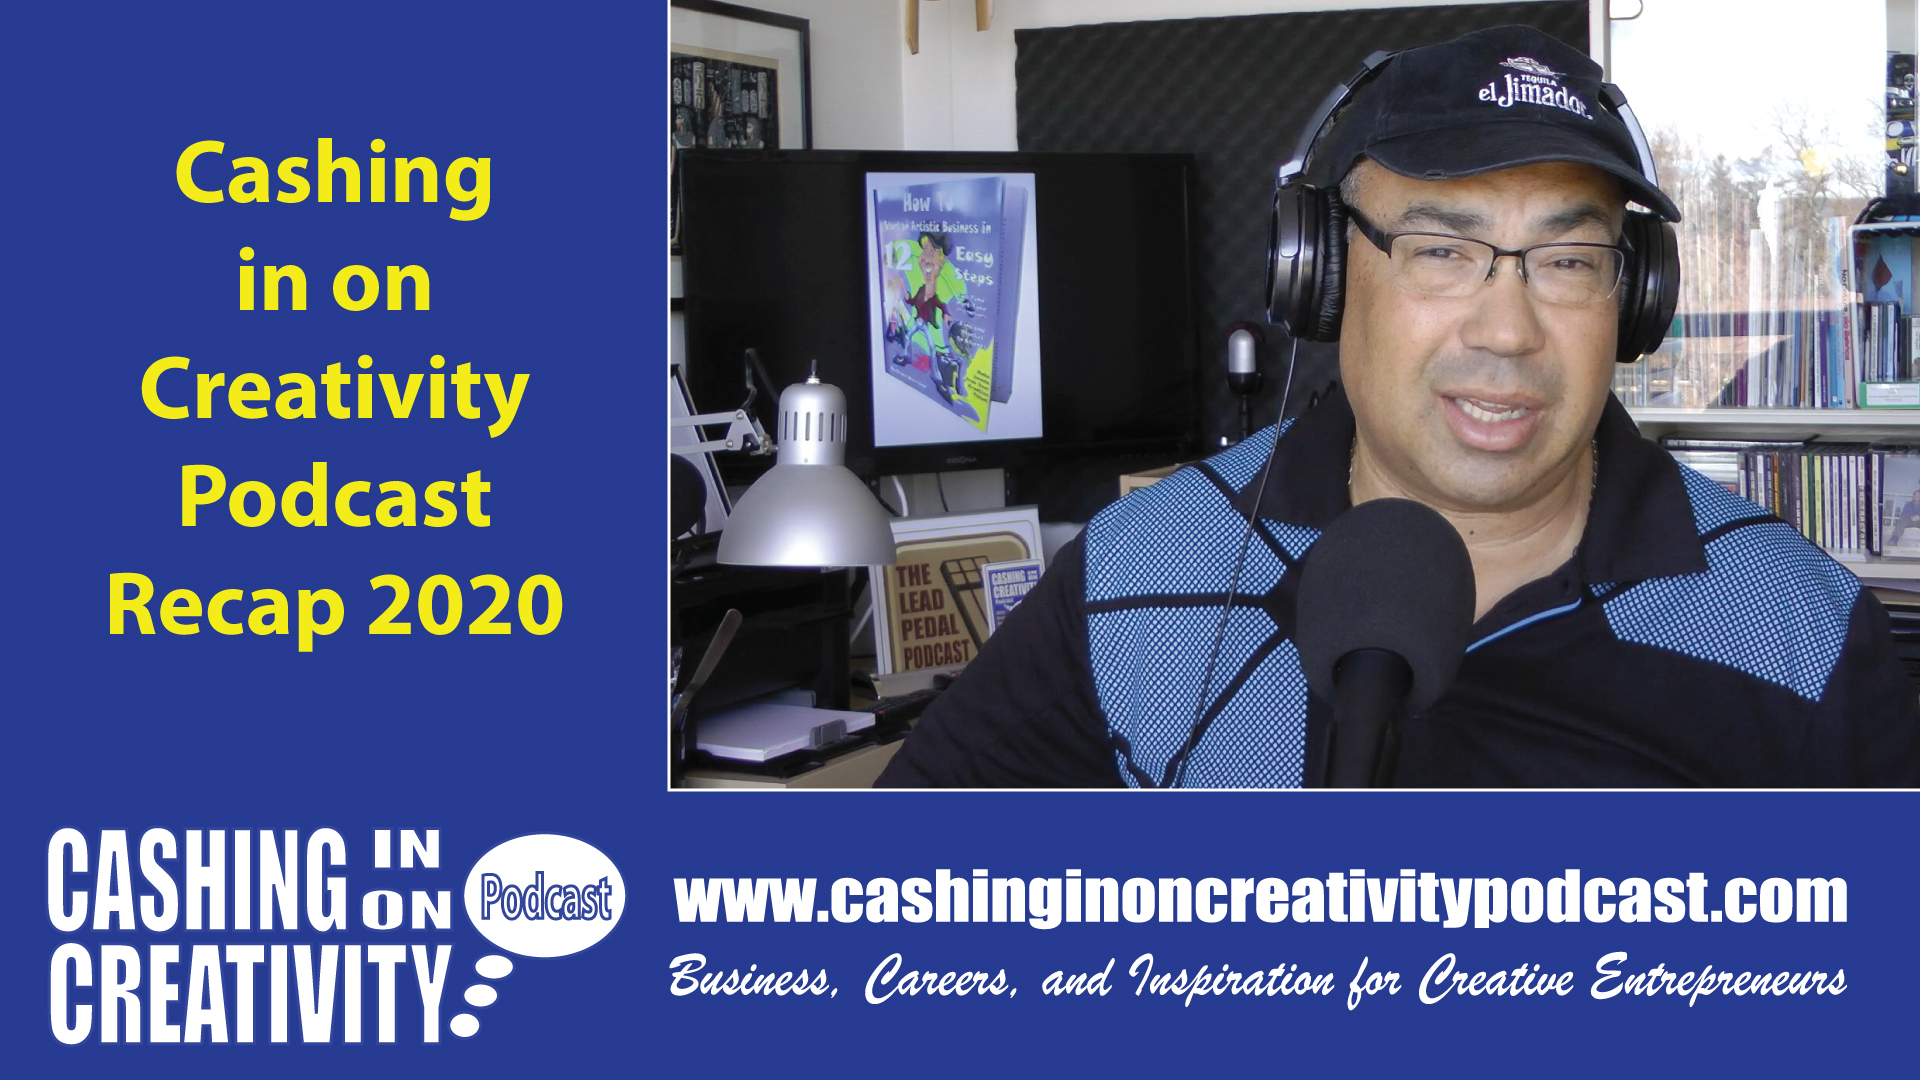 Recap 2020 Cashing in on Creativity Podcast